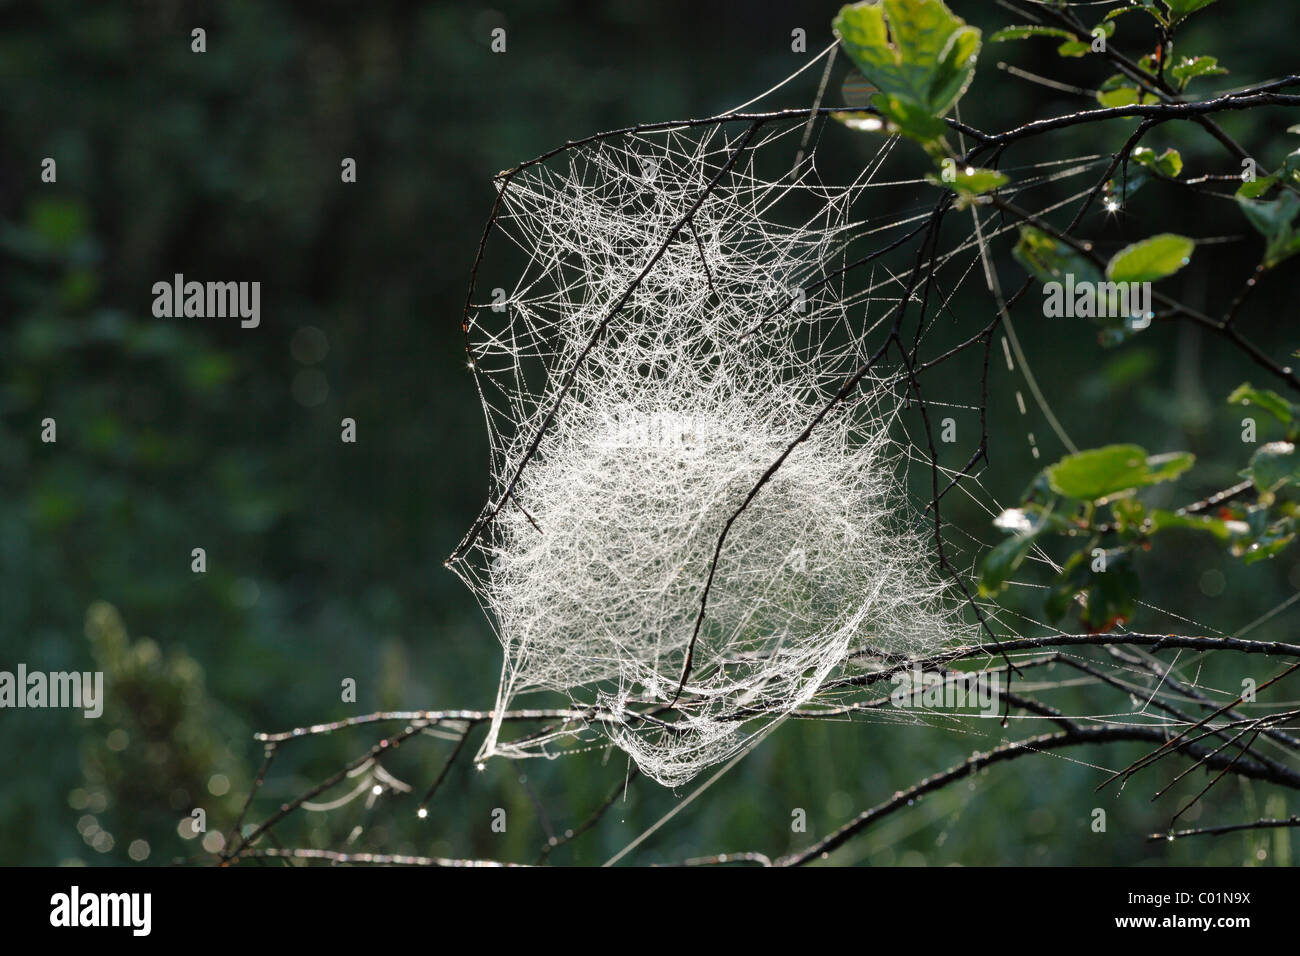 Spider web of a Sheet Weaver or Money Spider (Linyphiidae), Bavaria, Germany, Europe Stock Photo